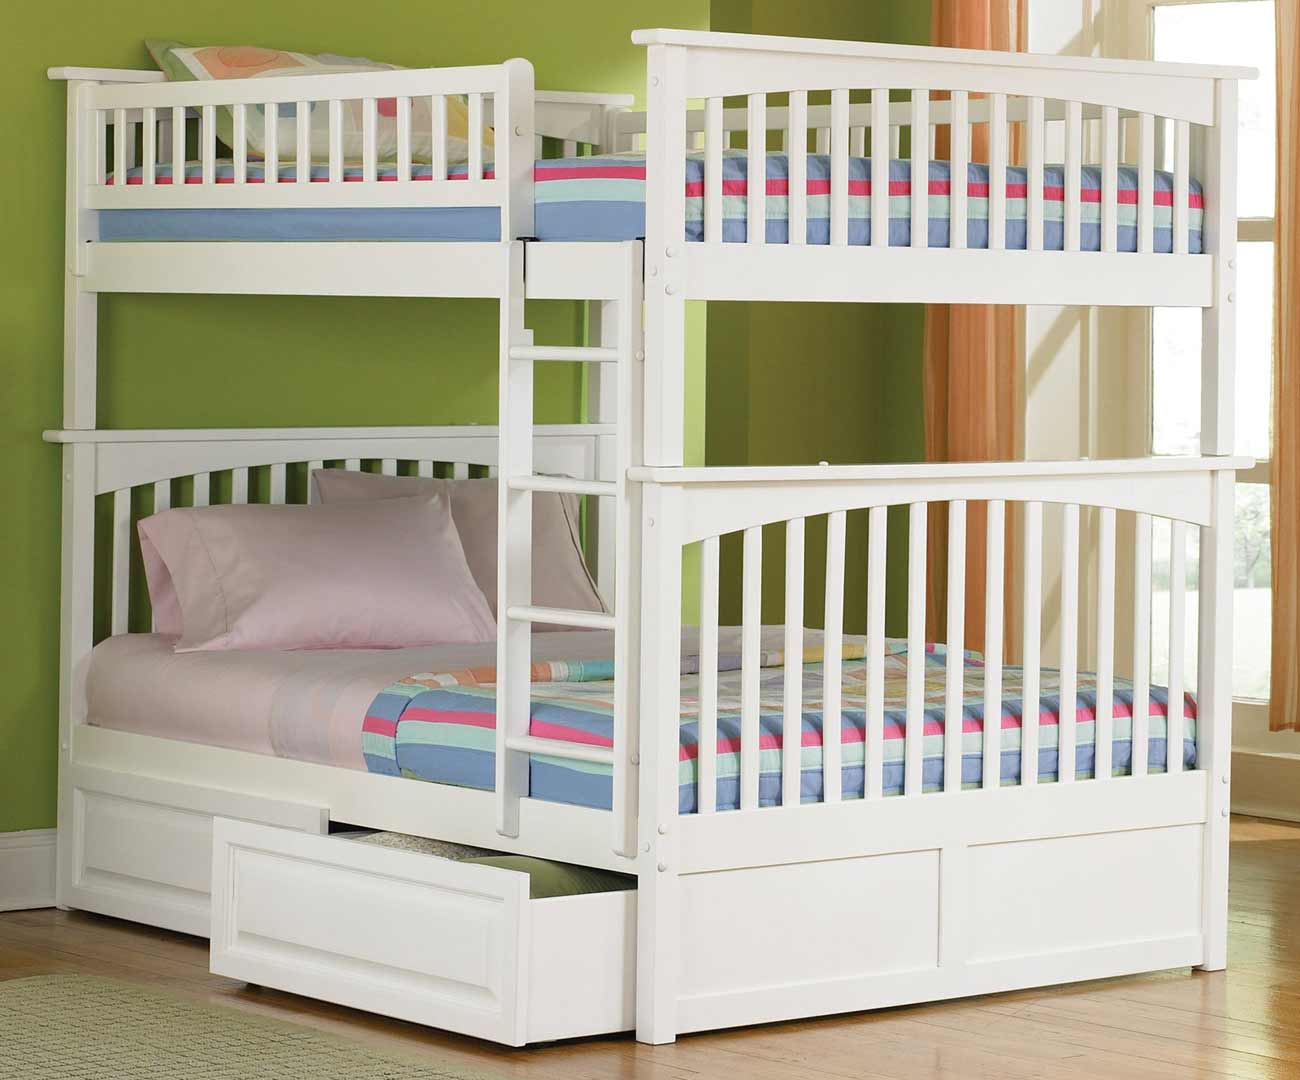 Bunk beds for teens bedroom for Best beds for teenager